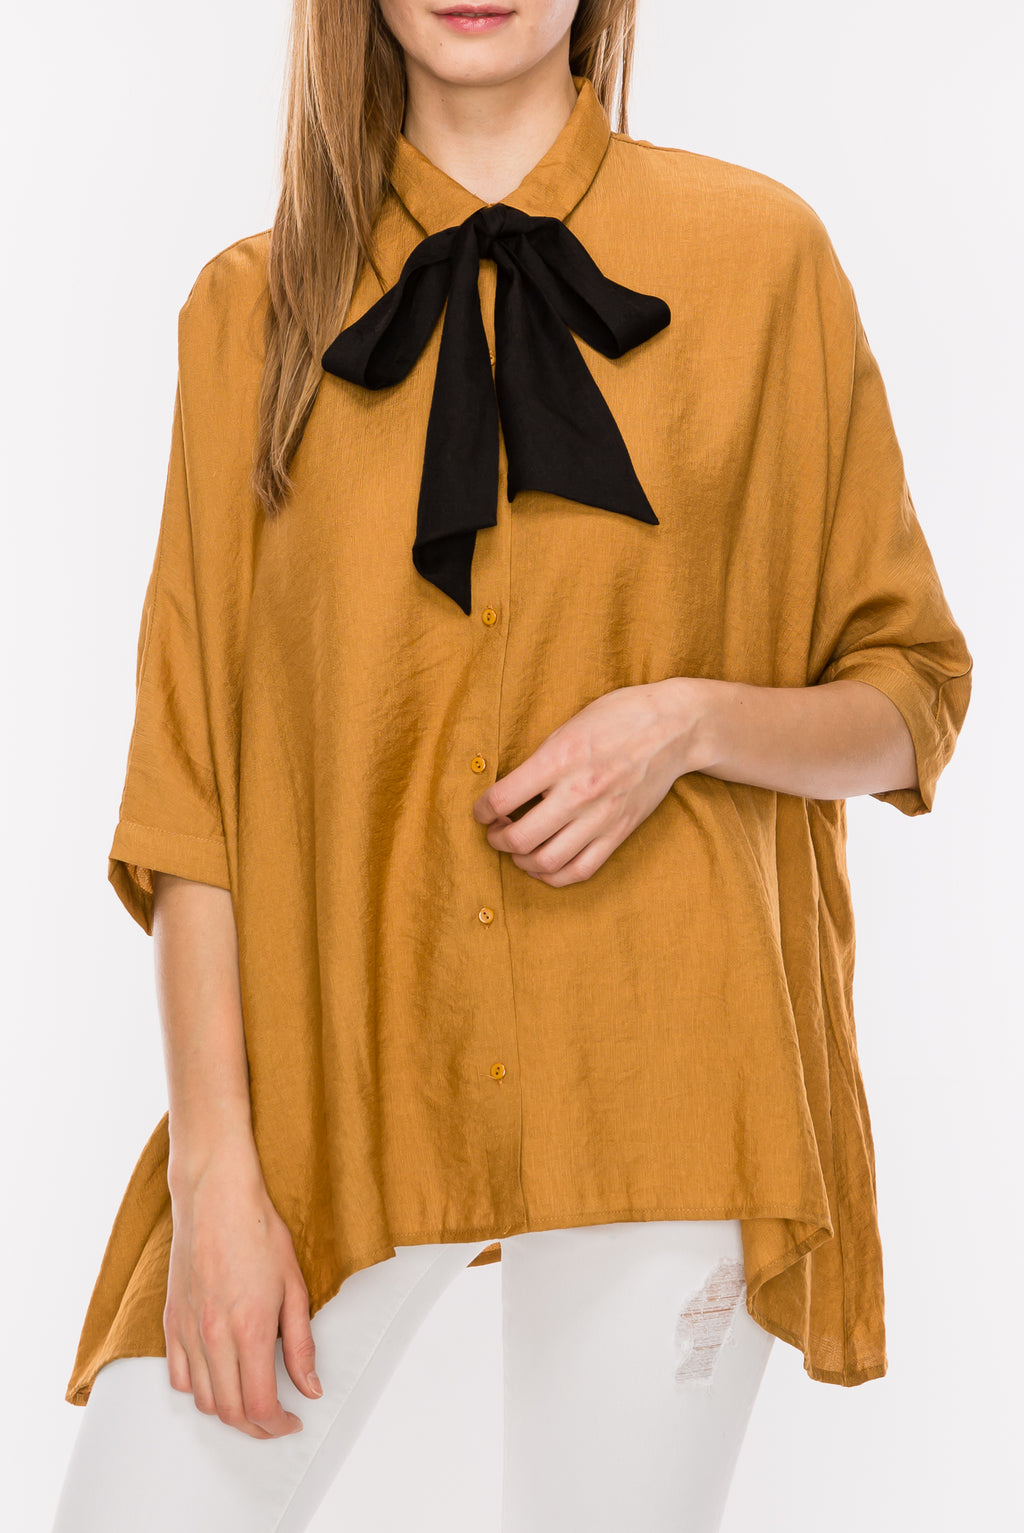 Flowy Collared Self Tie Bow 1/2 Sleeve Top | 3 Colors available